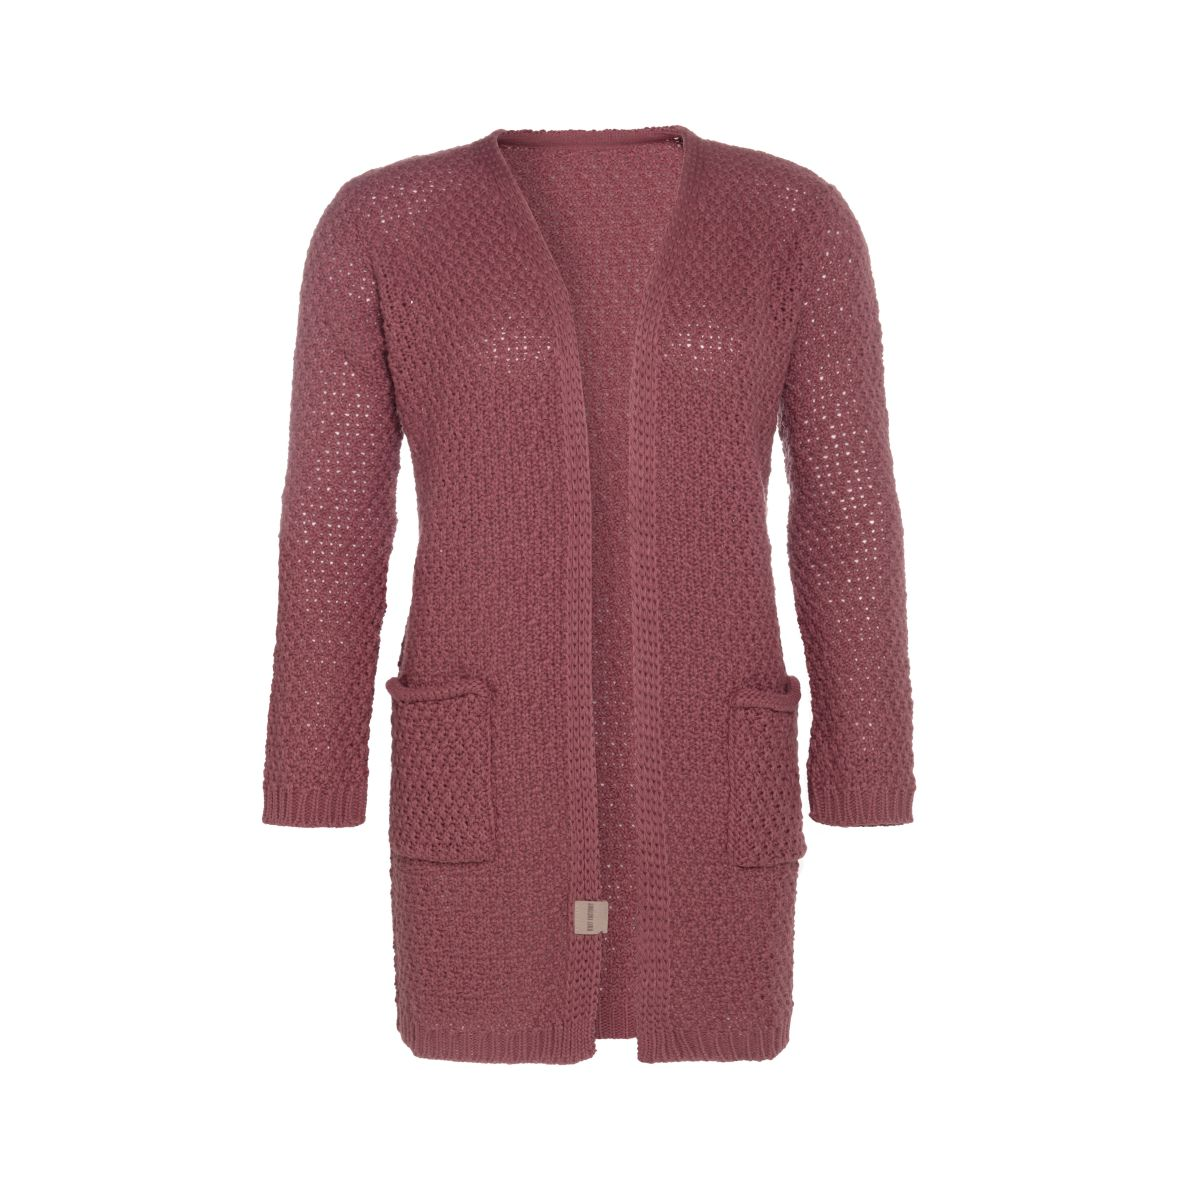 luna knitted cardigan stone red 3638 with side pockets